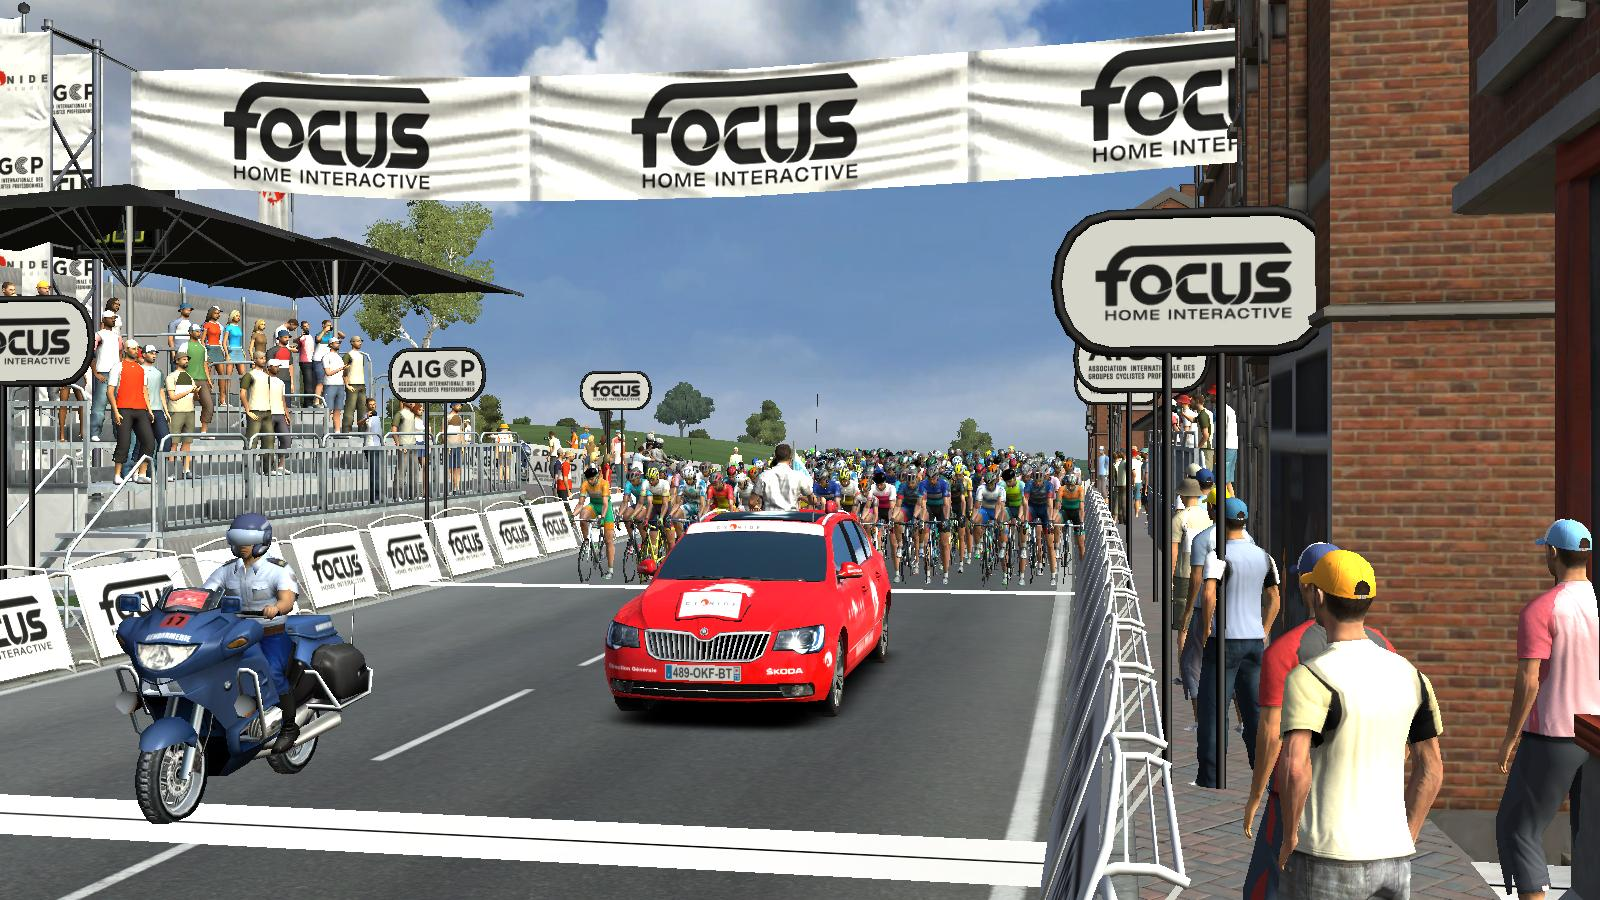 pcmdaily.com/images/mg/2019/Races/PTHC/Rheden/1.jpg